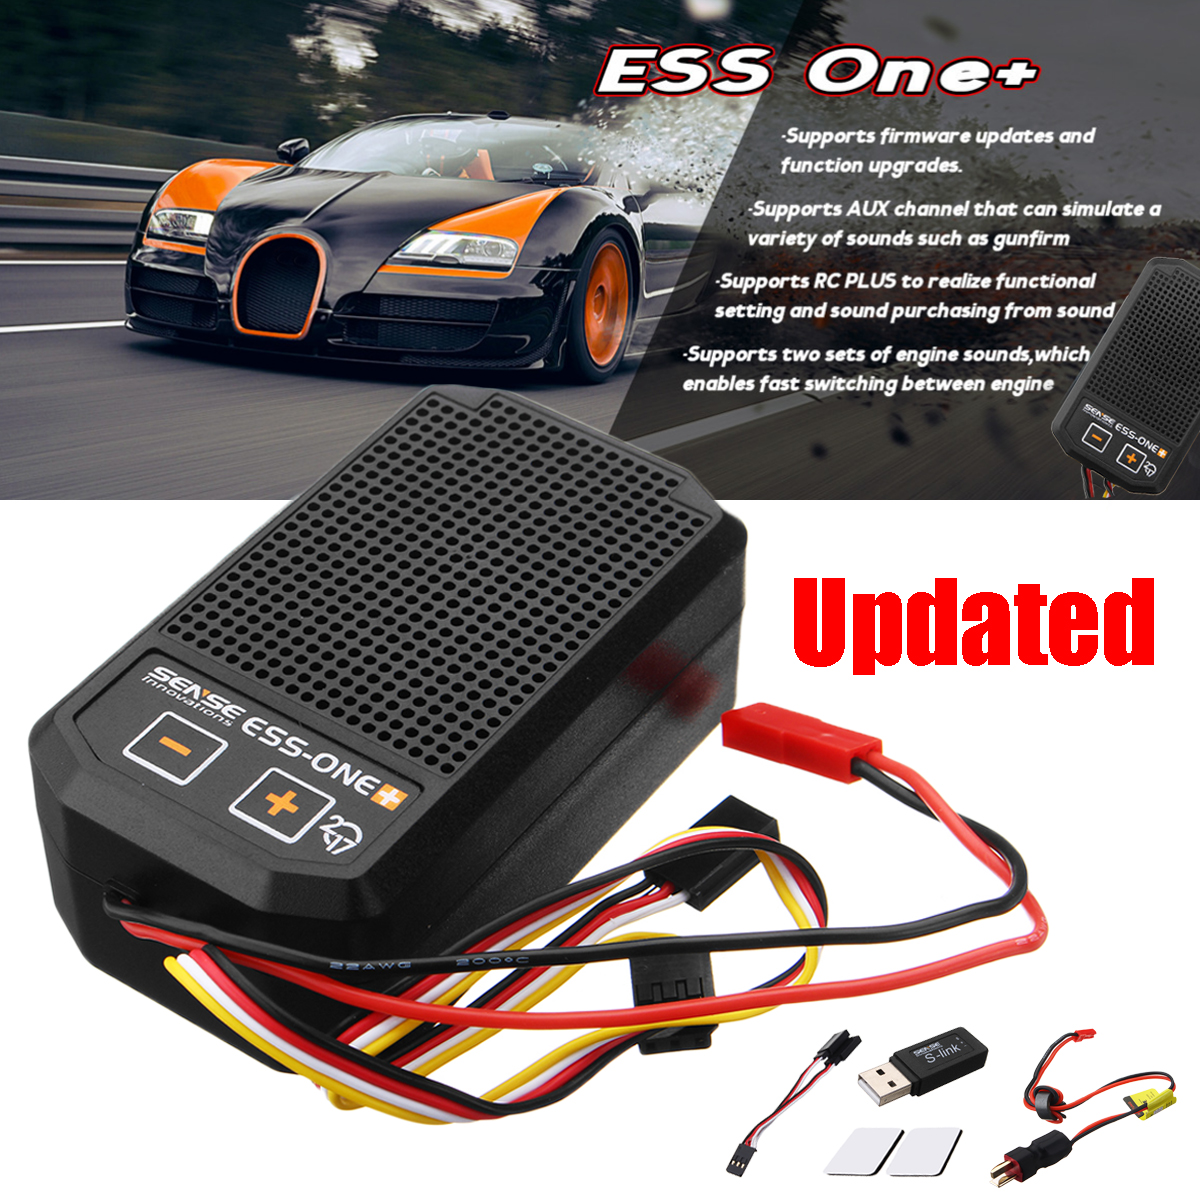 все цены на Real Engine Sound Simulator Kit RC Car Parts Sense Innovations One Plus 2017 Advanced DNS/DCR Overload Protected Intelligent онлайн